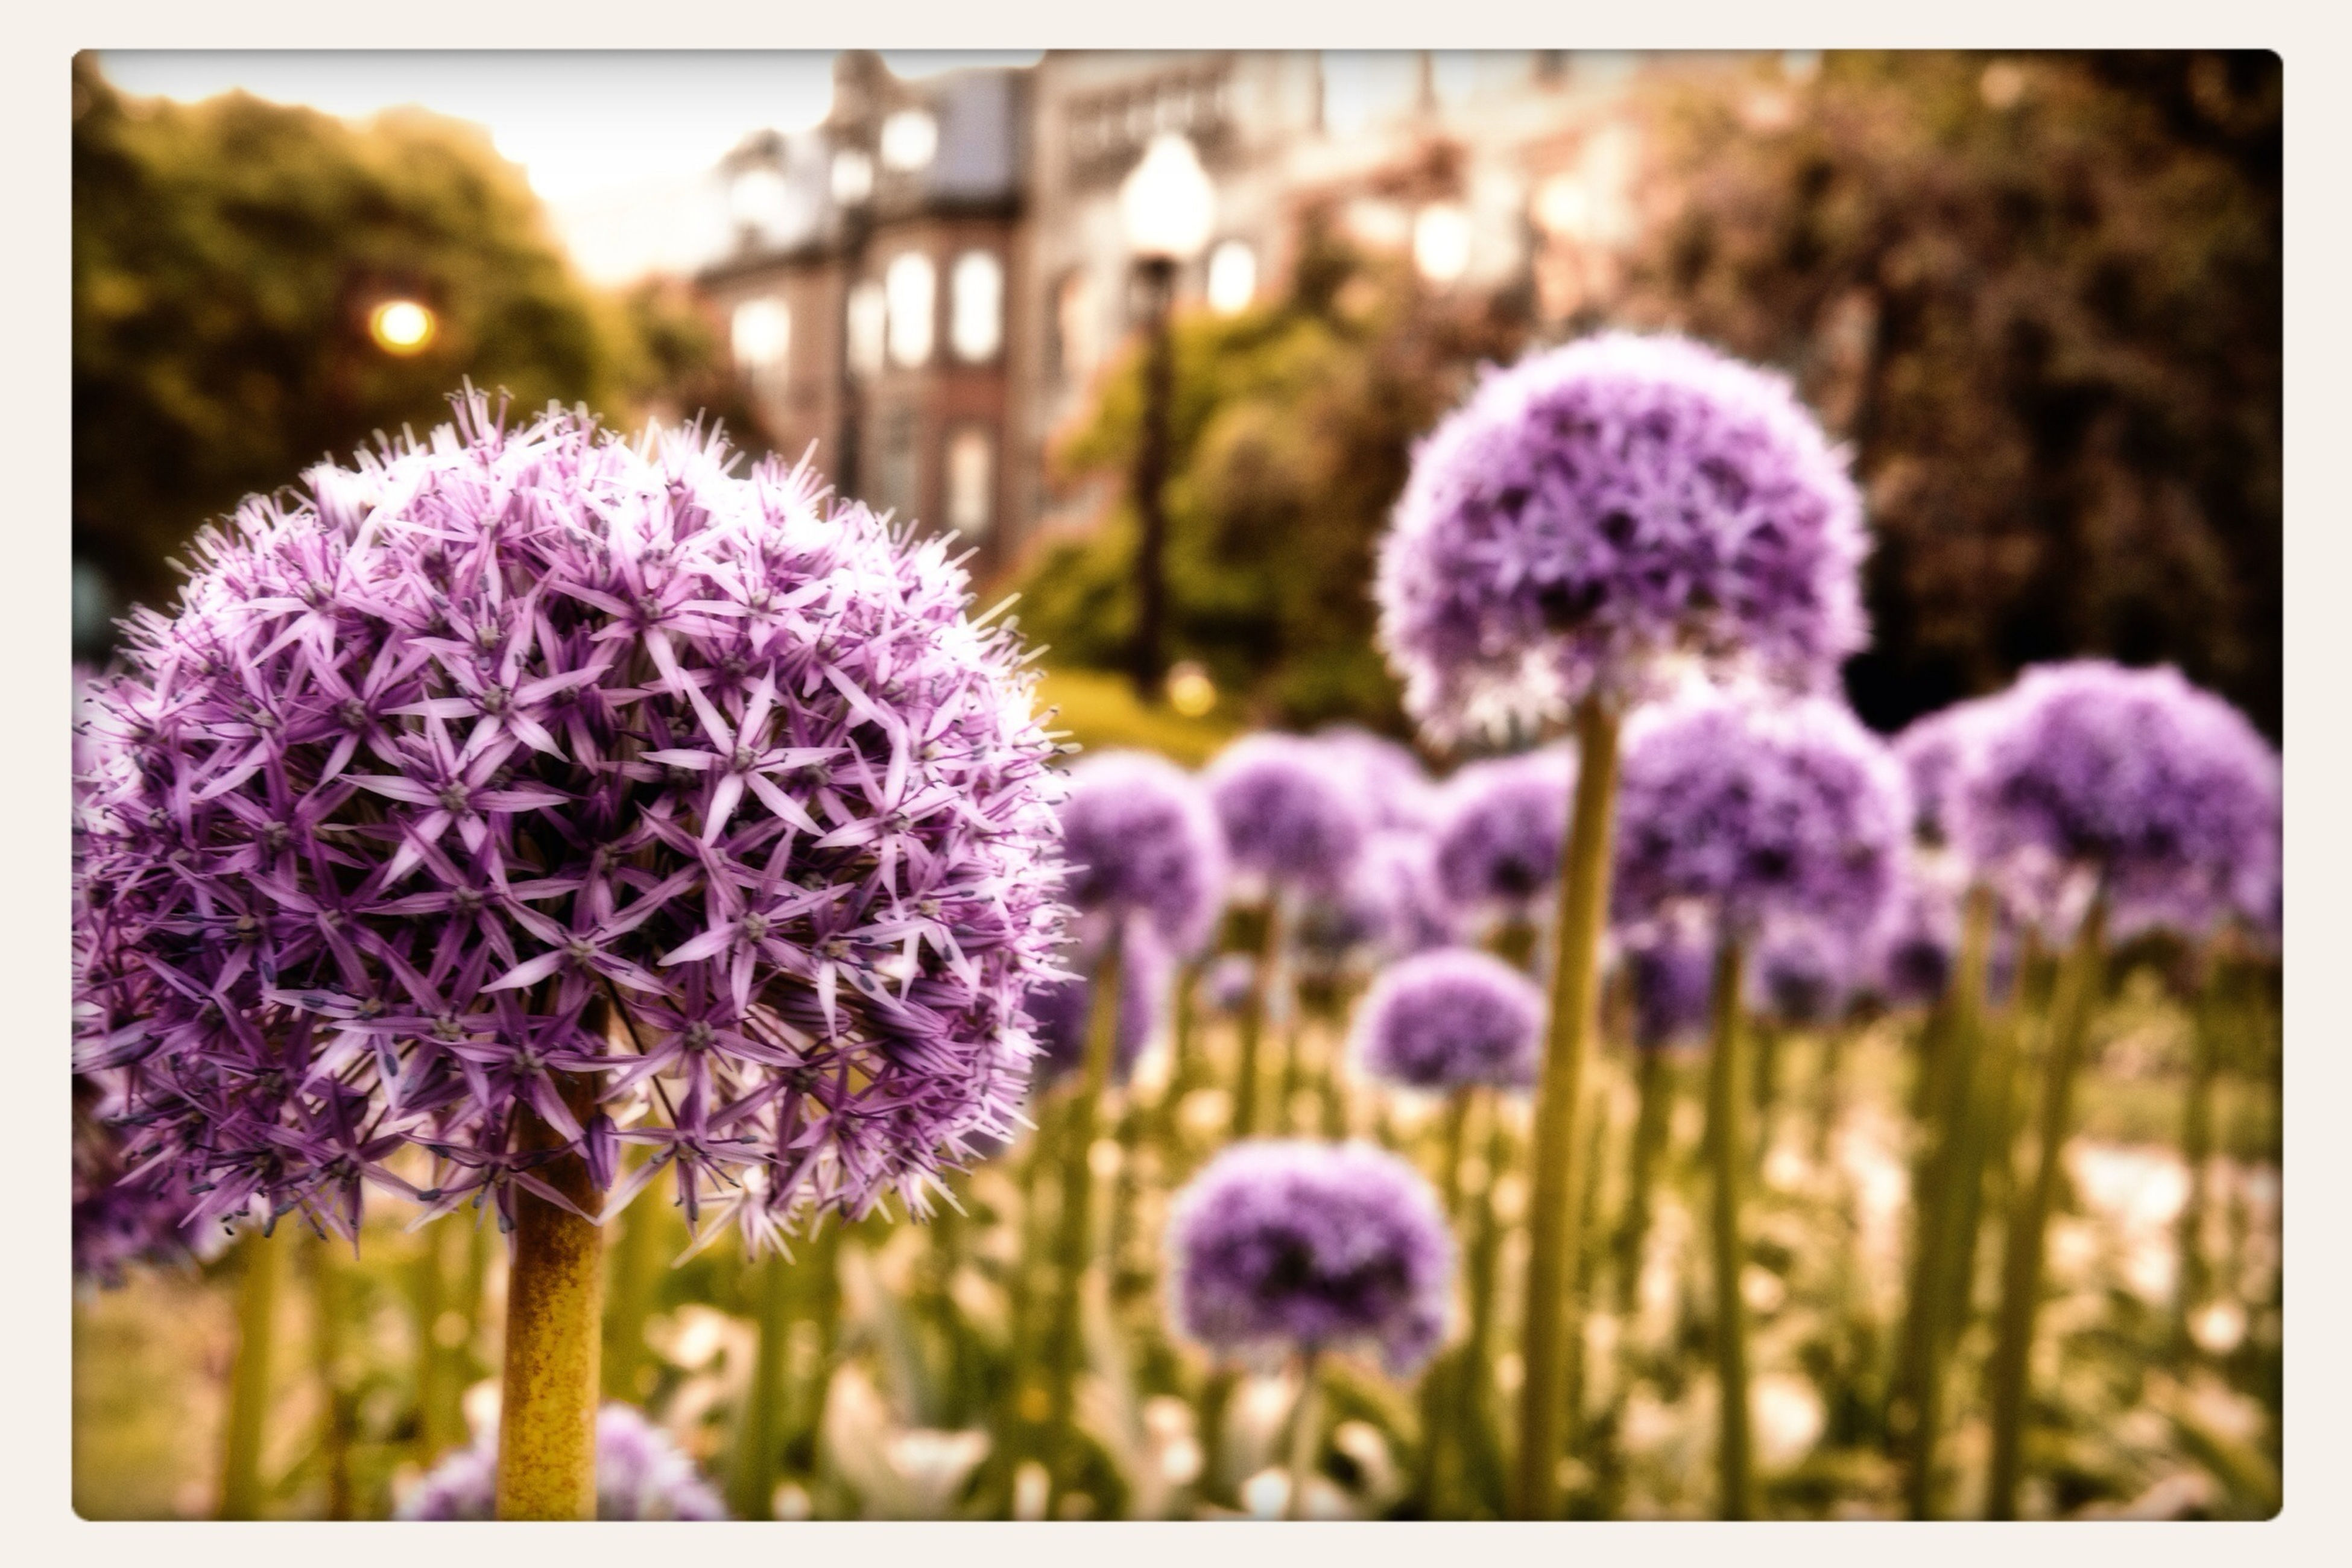 flower, freshness, purple, fragility, growth, flower head, beauty in nature, focus on foreground, petal, close-up, nature, blooming, in bloom, plant, transfer print, auto post production filter, blossom, field, stem, selective focus